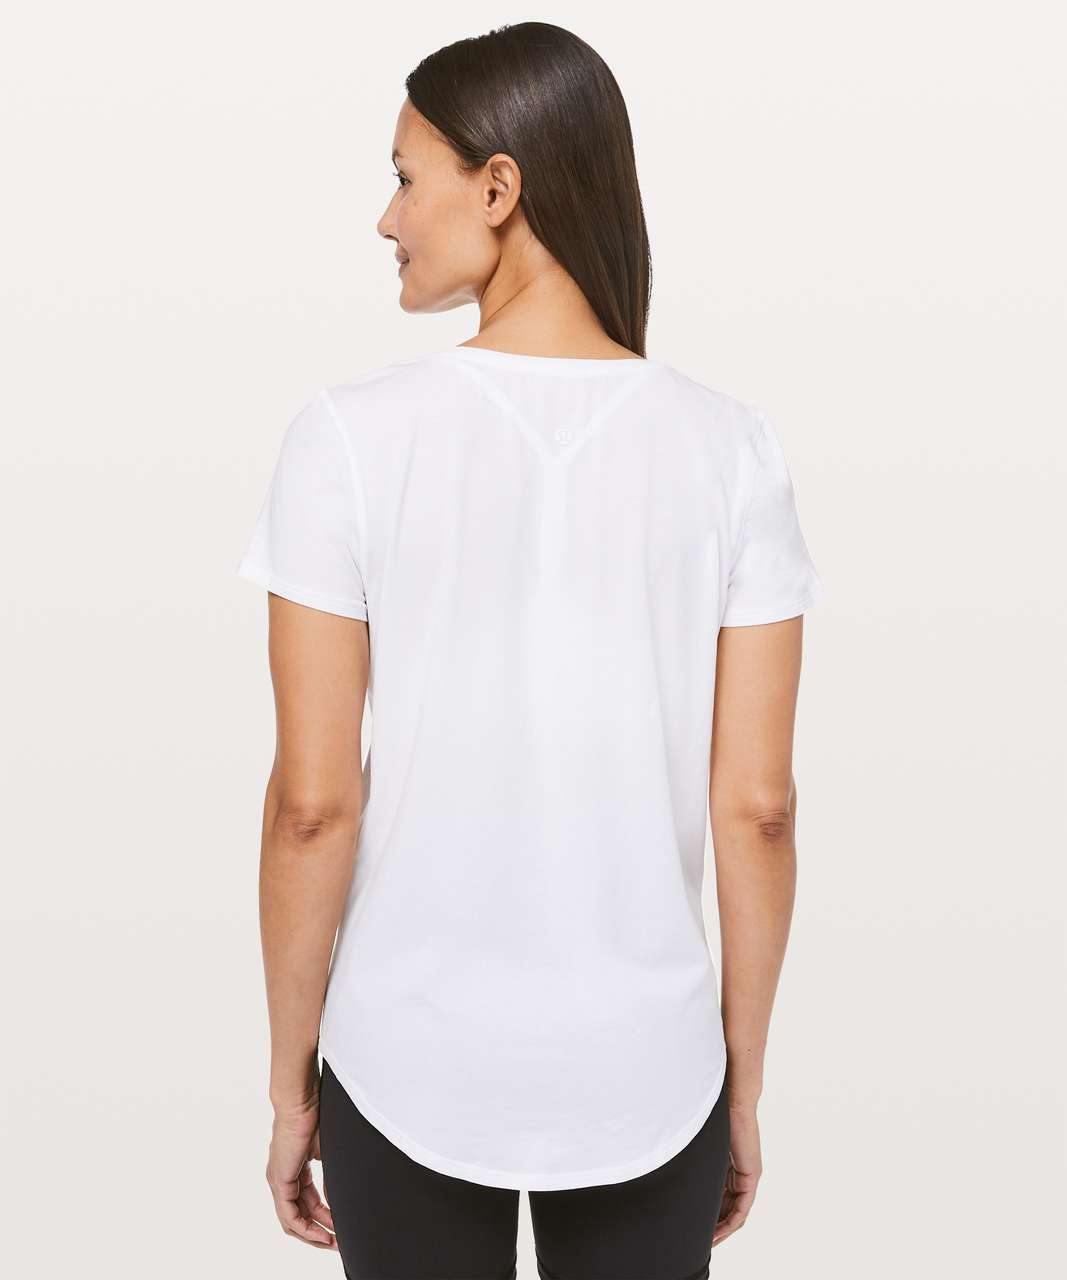 Lululemon Love Crew *International Women's Day - White